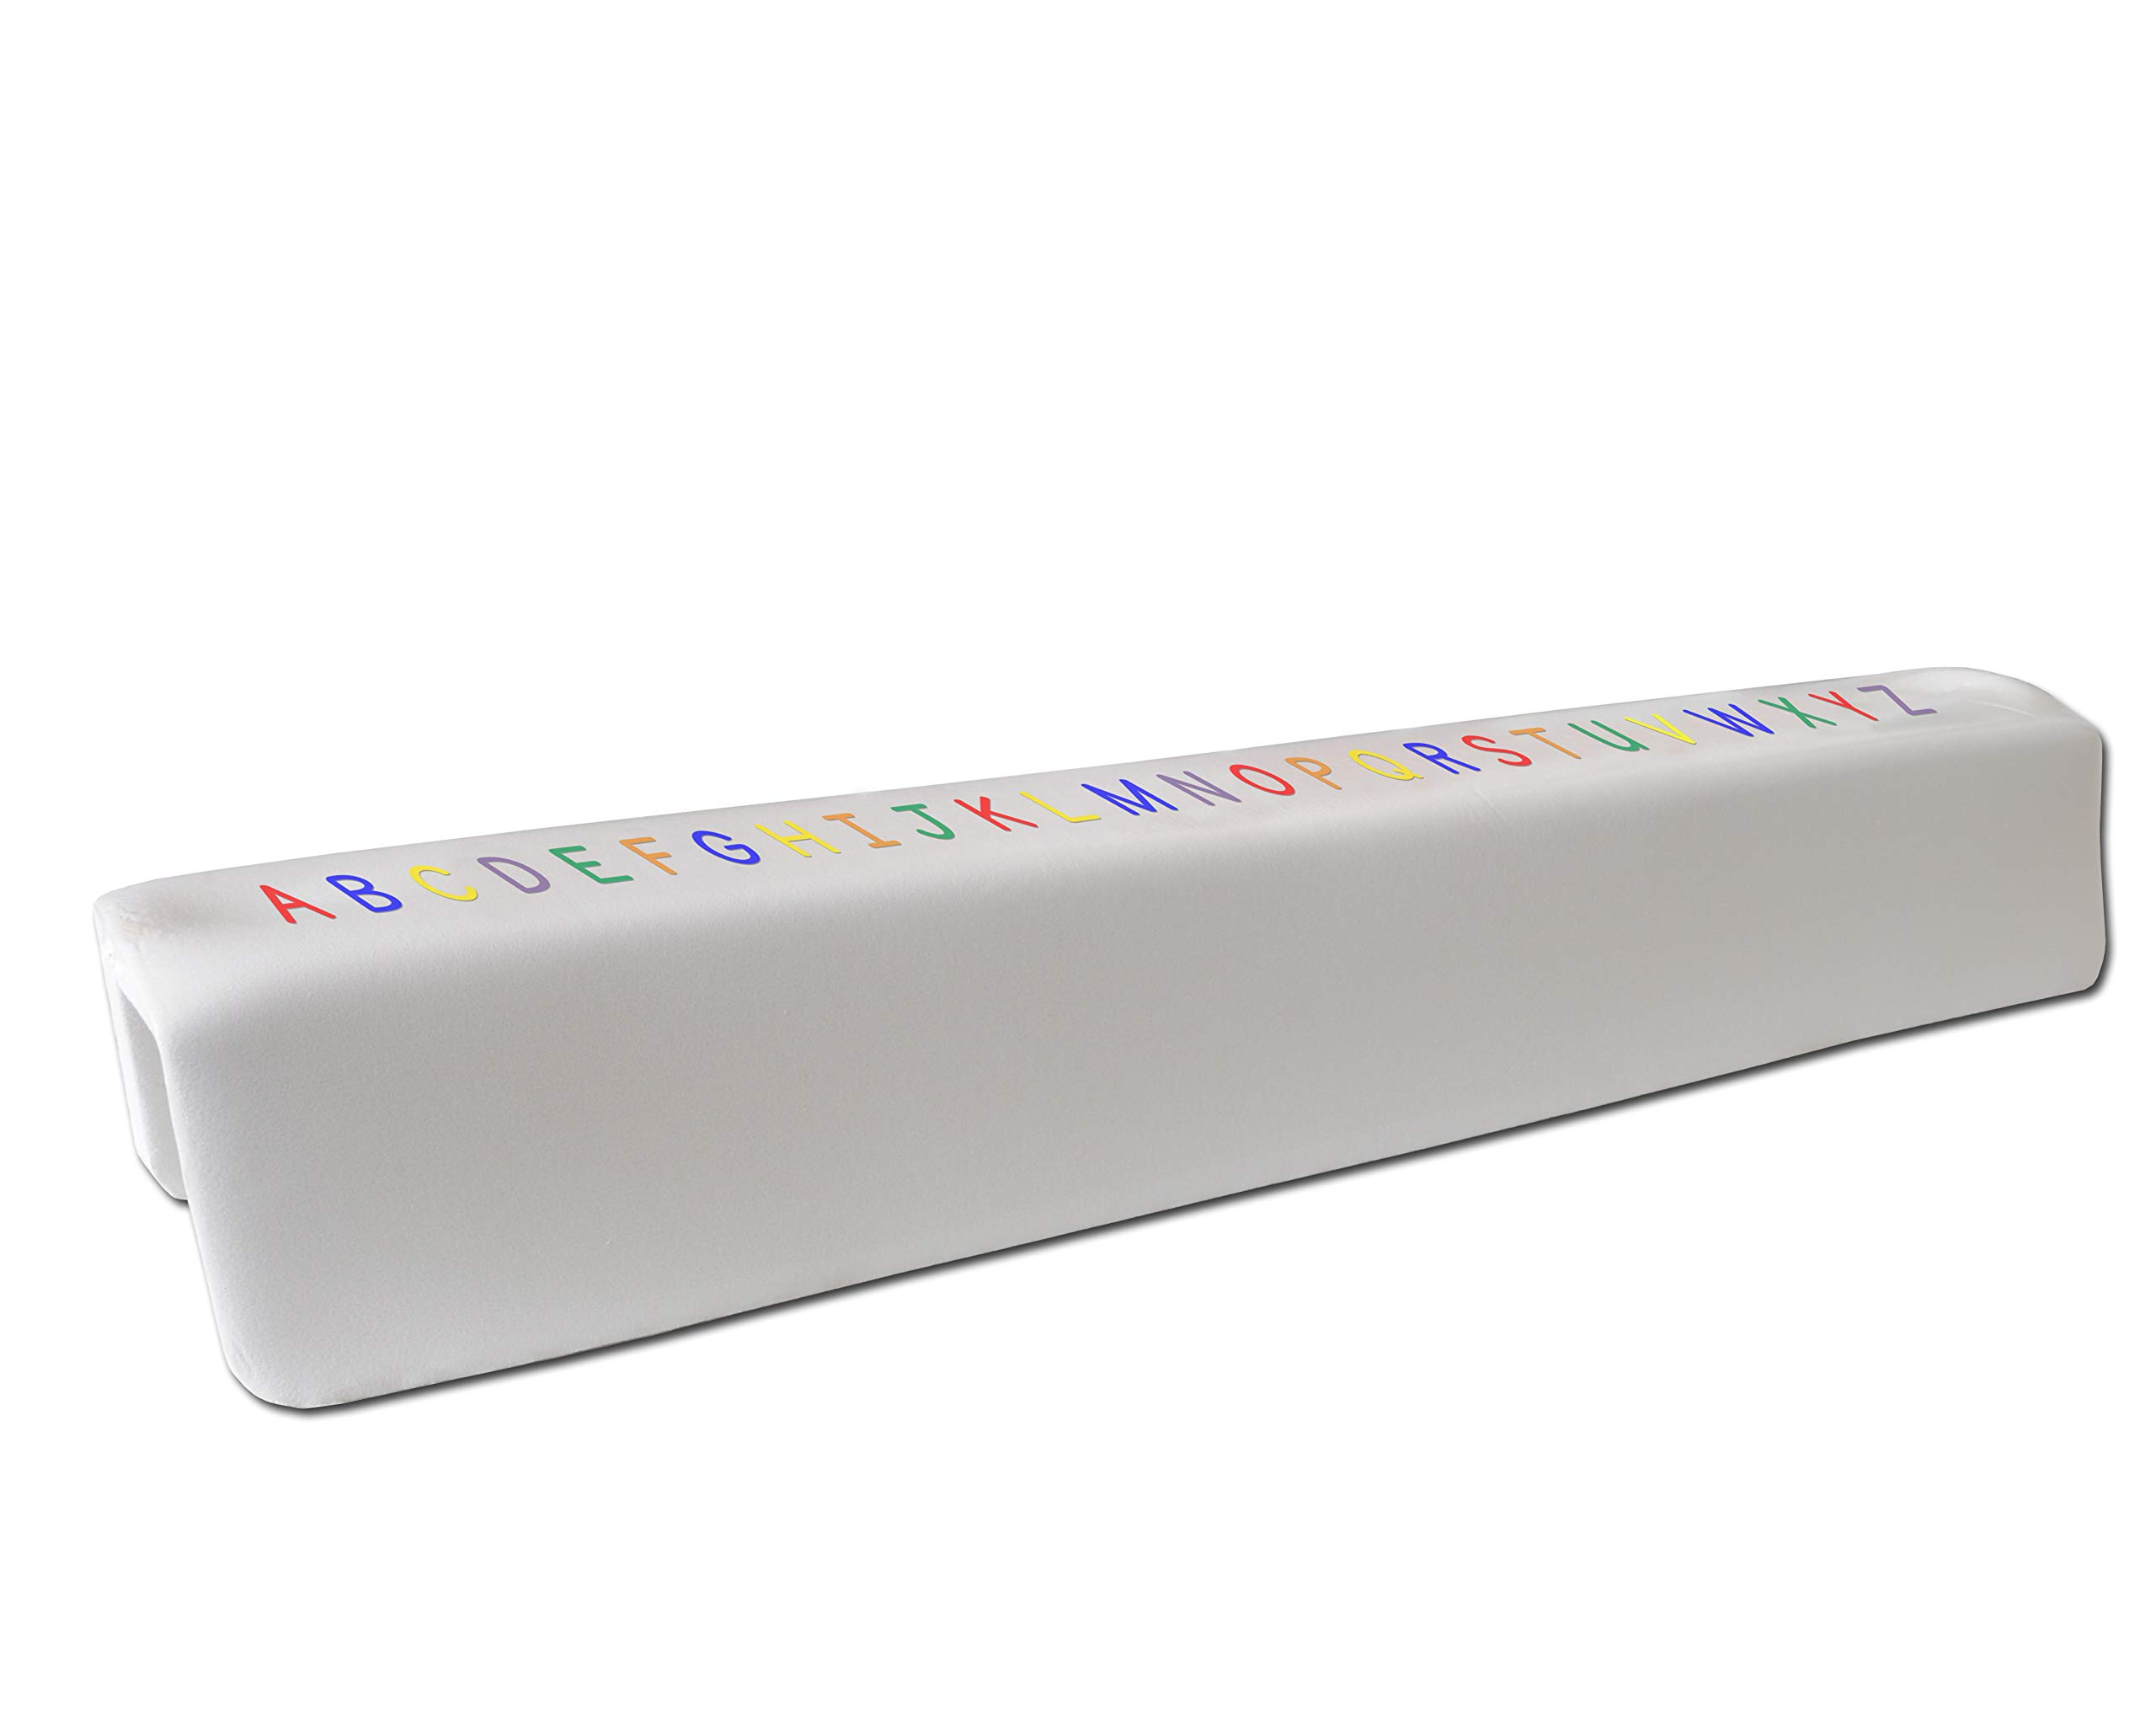 Bath Tub Guard and Elbow Rest for Child Safety and Parent Comfort During Bath Time by Joy Safety Products (Image #2)